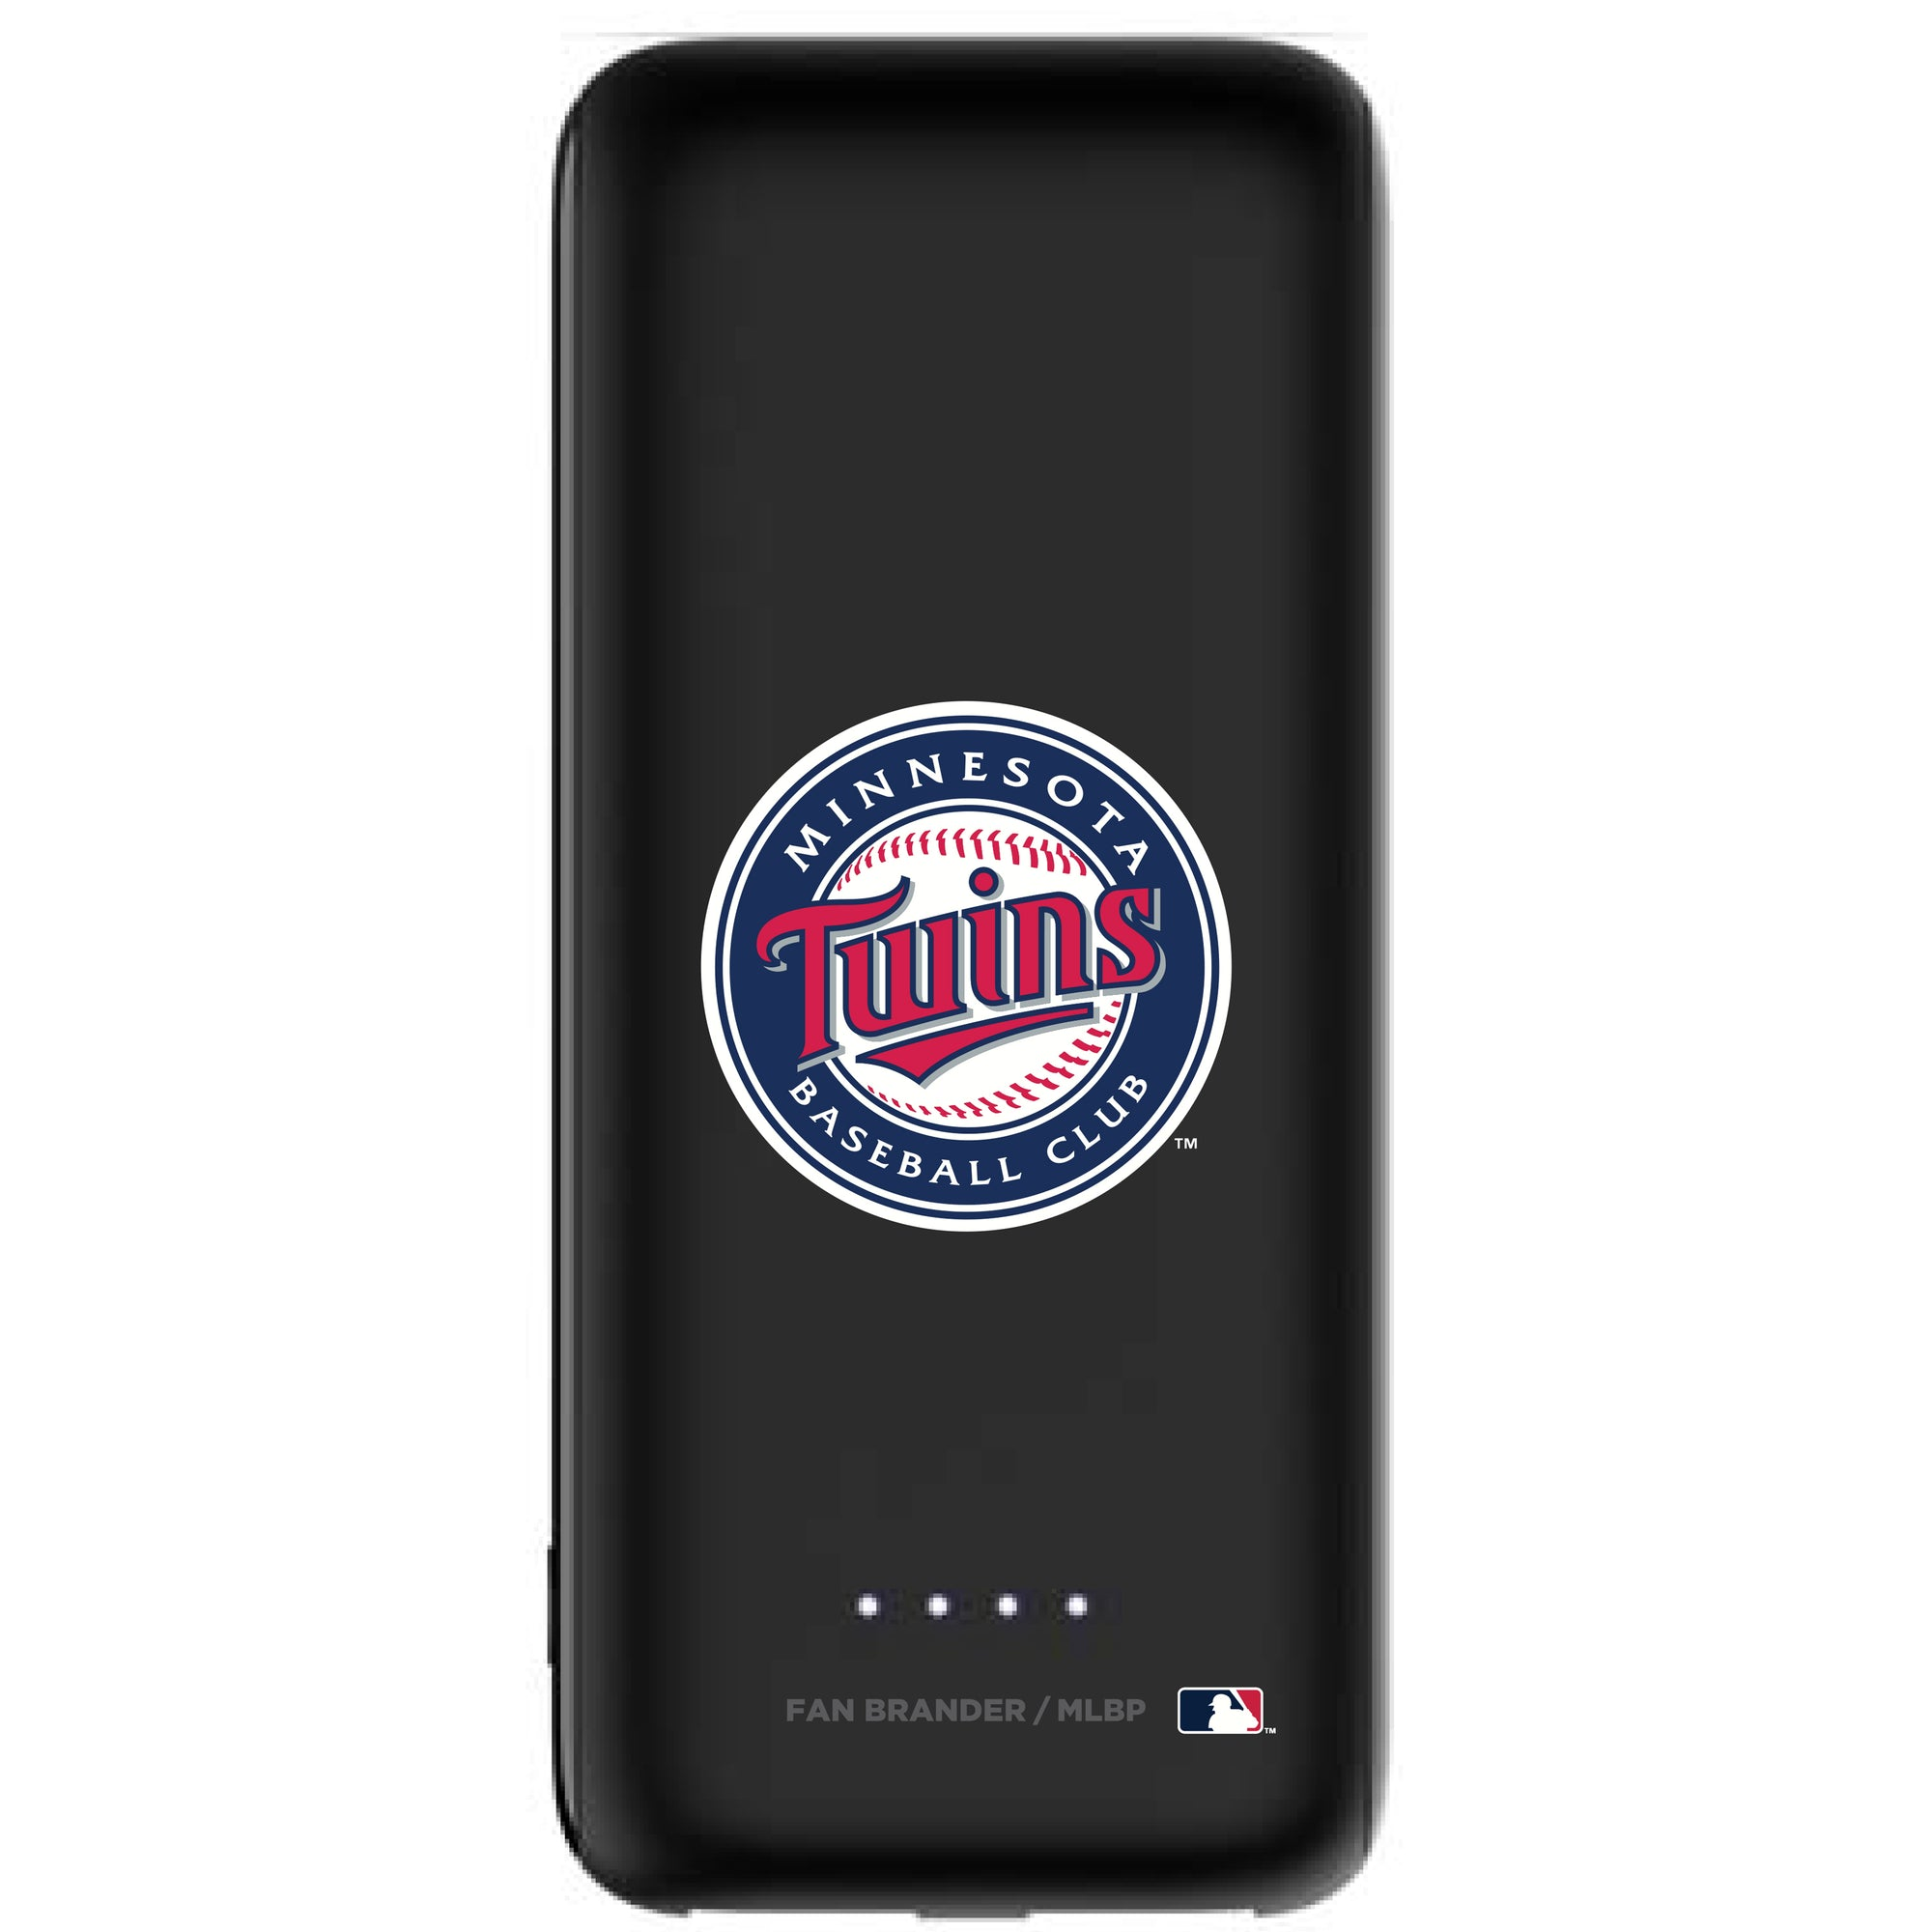 Minnesota Twins Power Boost Mini 5,200 mAH